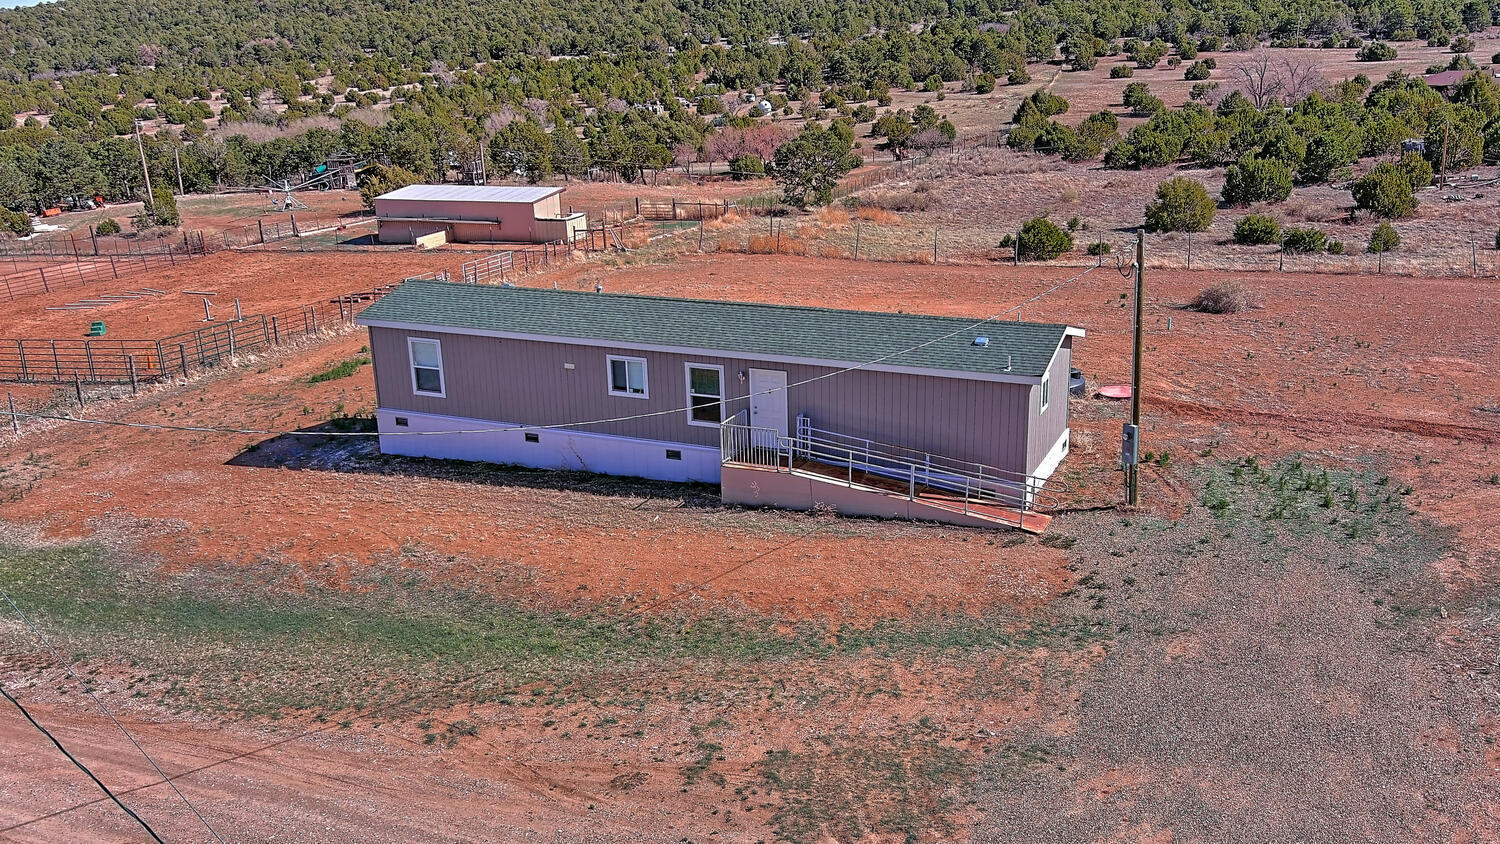 Super nice 4 year old Karsten home! Nice kitchen, complete with stylist dark cabinetry open concept great floor plan! master separate from other bedroom! Still like brand-new! Gorgeous laminate wood like flooring throughout, nice quite dead end location!, Beautiful setting, lots of trees and gorgeous views! fully fenced in! exterior sheds, Handicap access, pull bar, exterior front door ramp, and so much more!